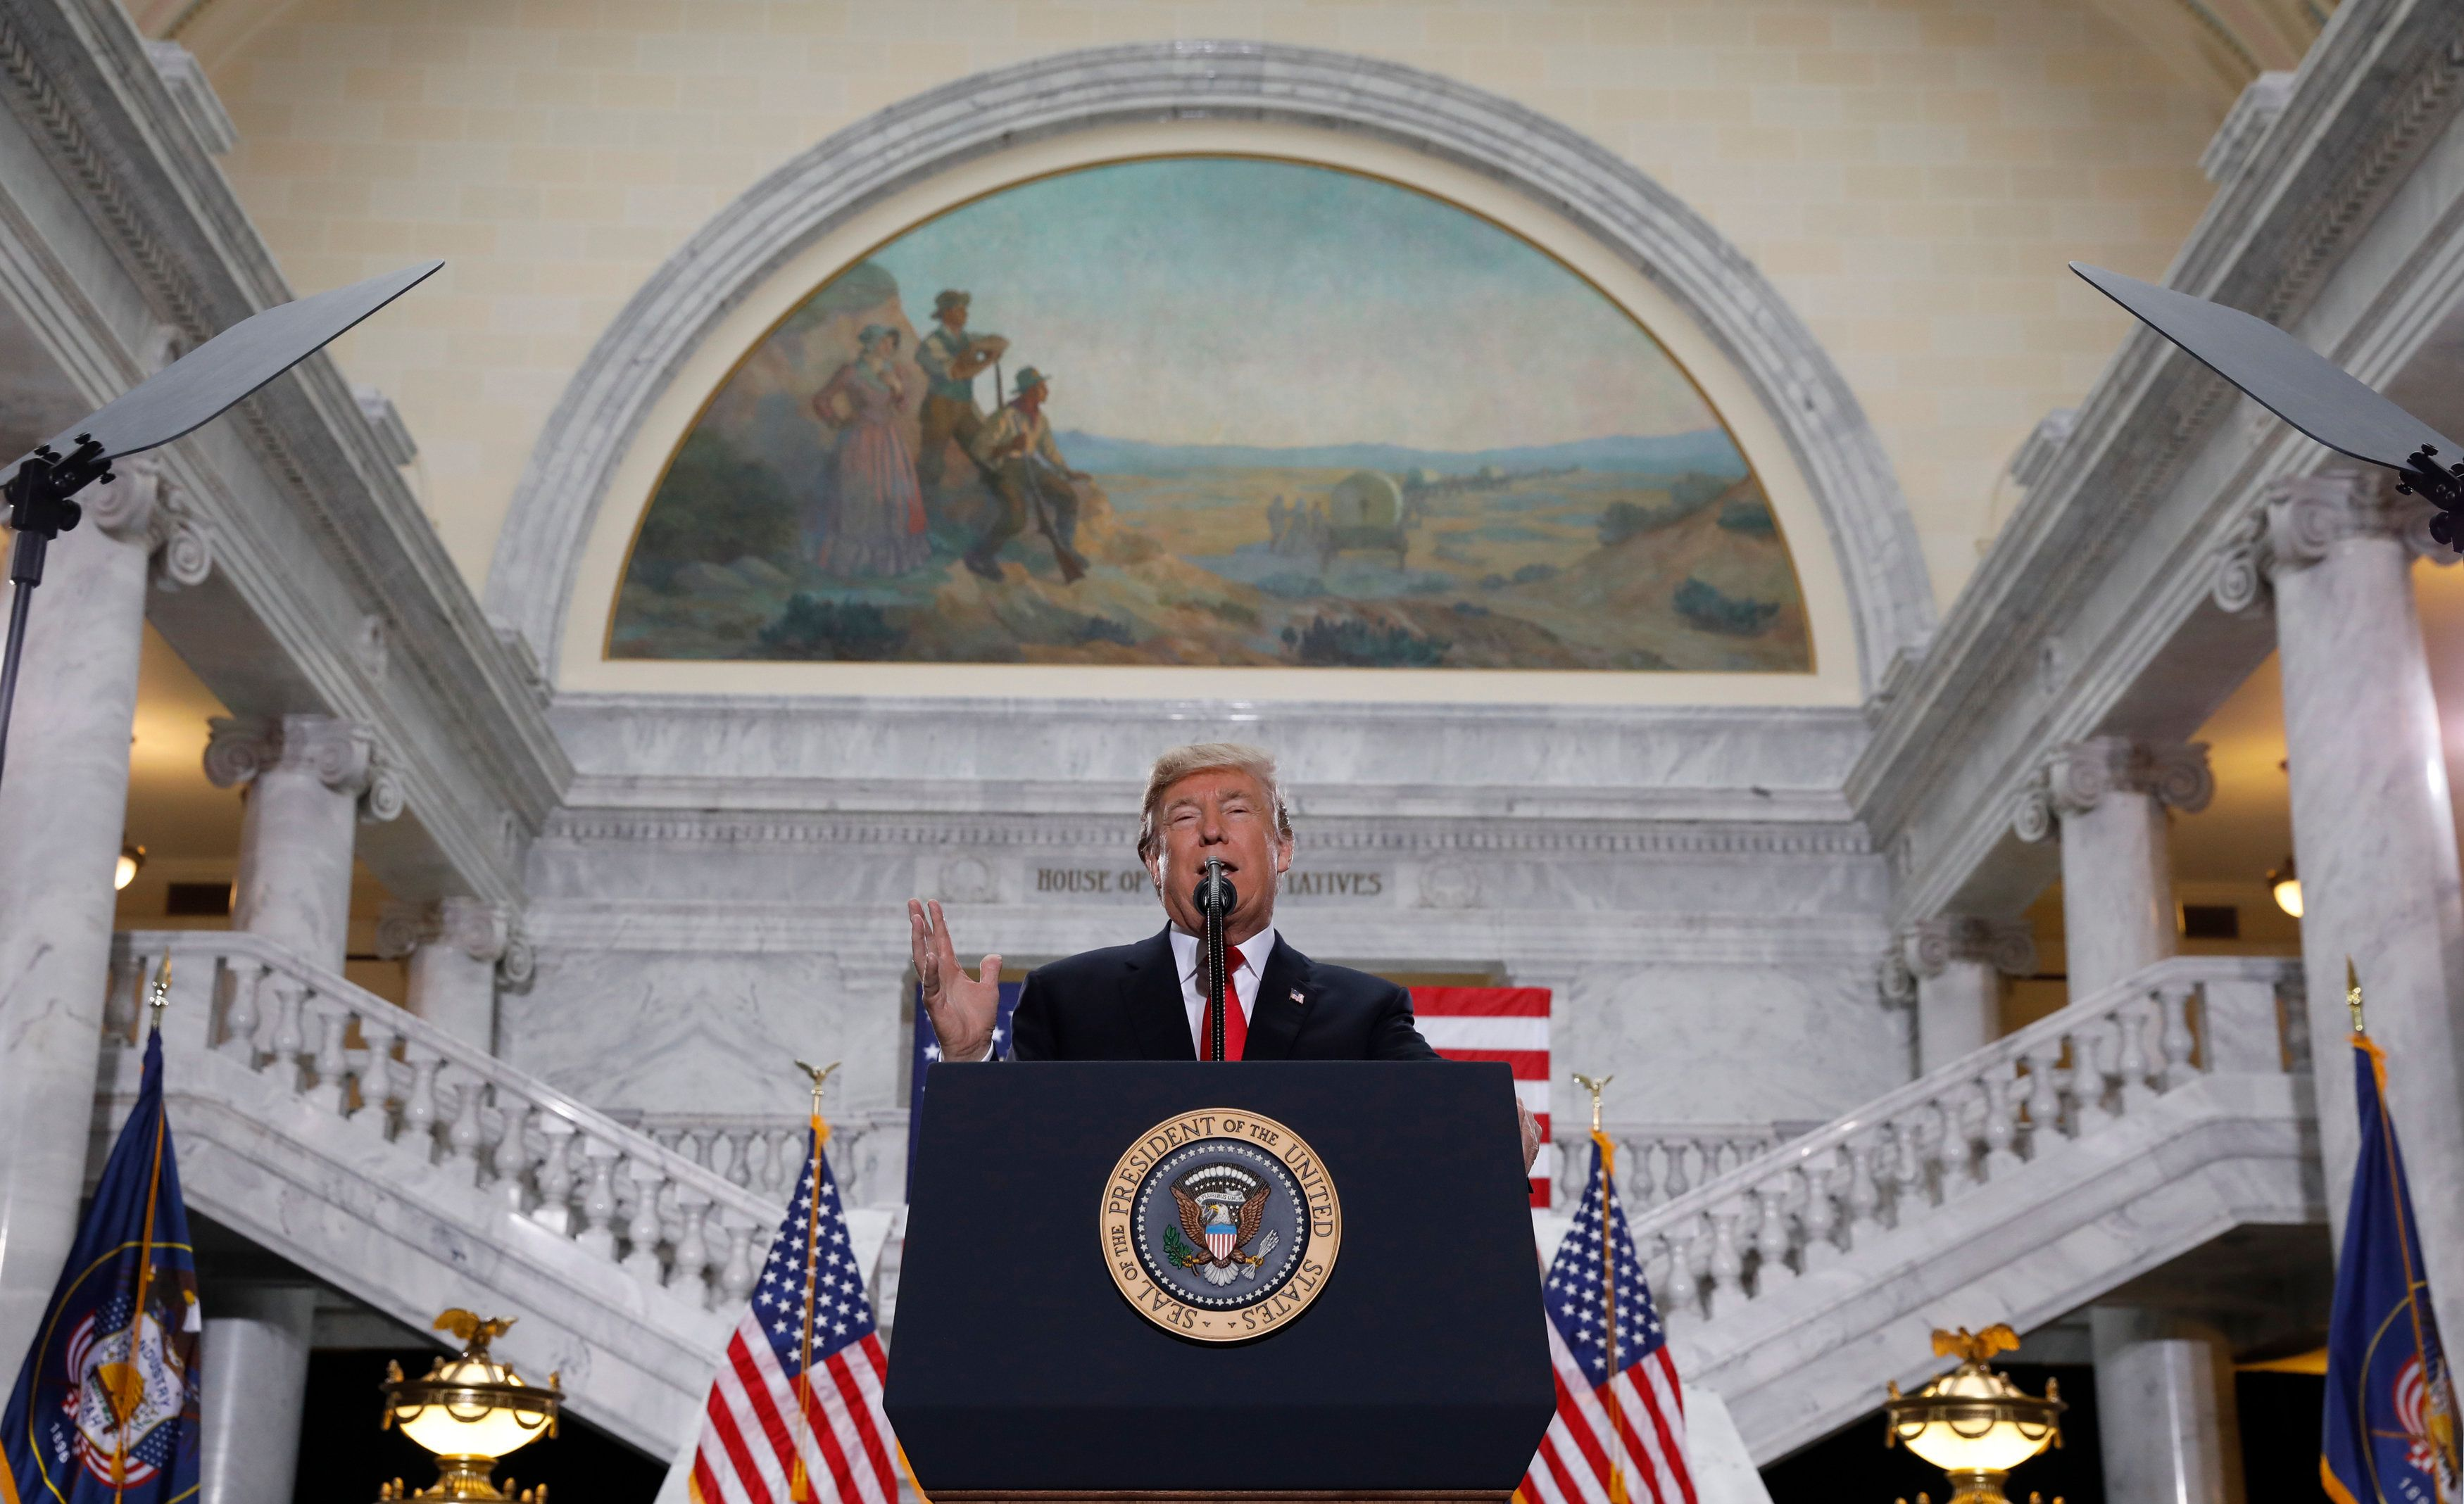 U.S. President Donald Trump speaks at the Utah State Capitol, after he called for a 90 percent reduction in the size of Utah's Bears Ears National Monument and 50 percent reduction to the state's Grand Staircase Escalante National Monument,  in Salt Lake City, Utah, U.S., December 4, 2017. REUTERS/Kevin Lamarque